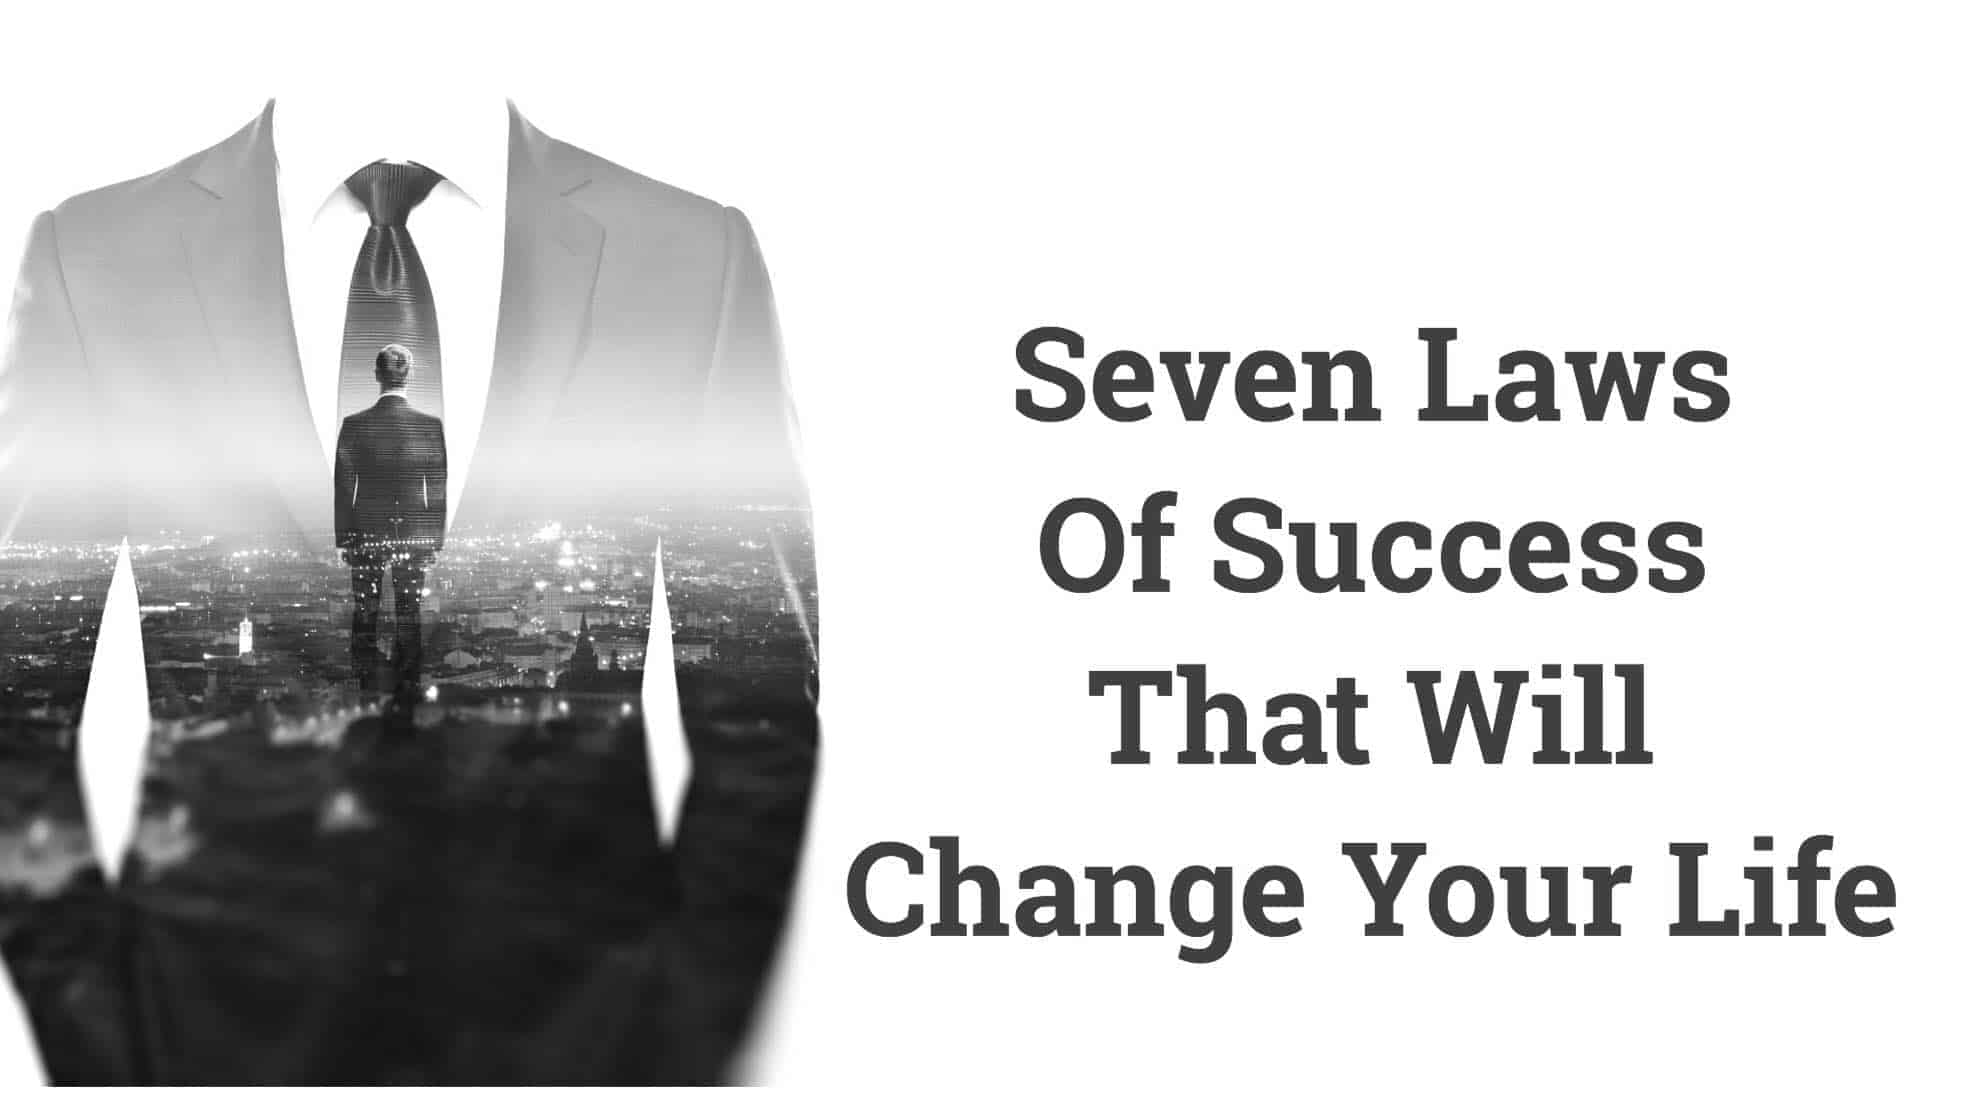 Seven Laws Of Success That Will Change Your Life